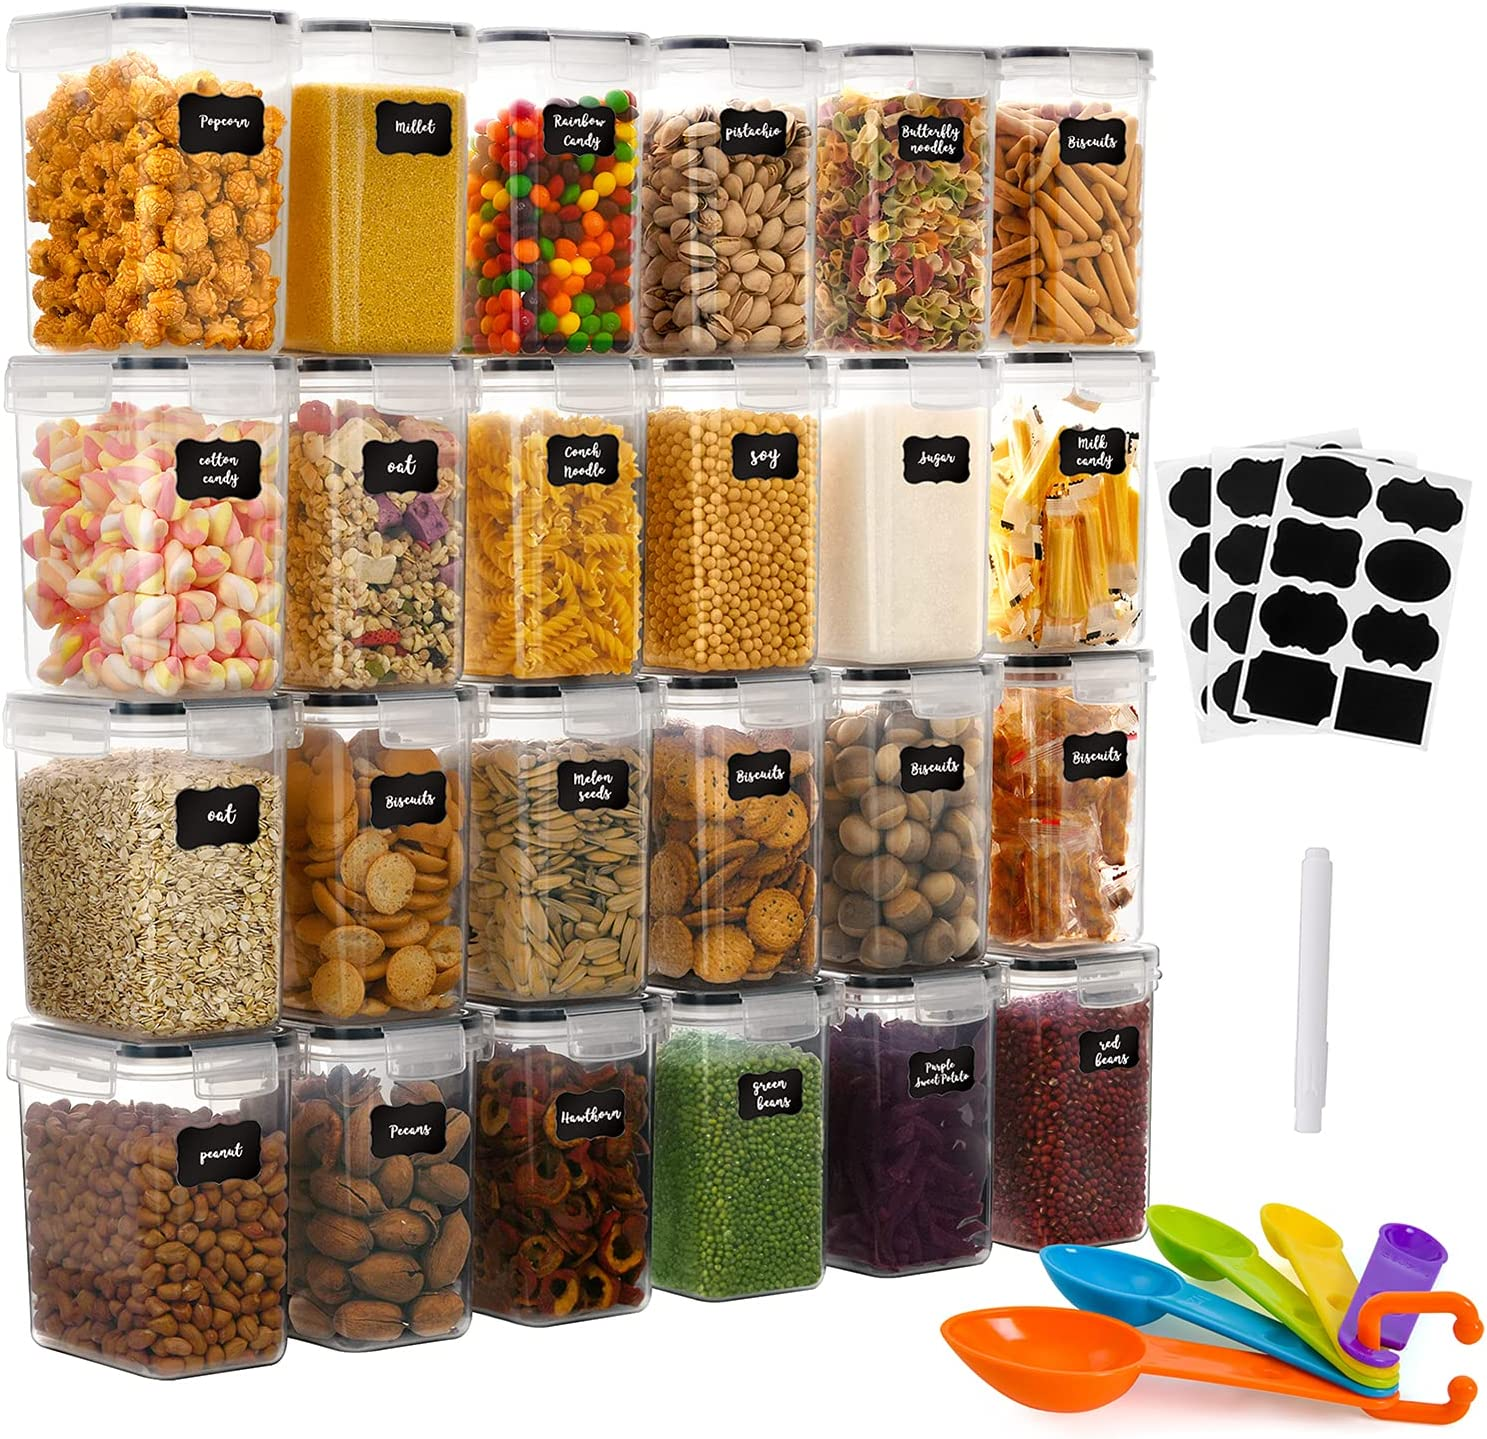 GoMaihe 1.6L Food Storage Containers 24 Pcs, Plastic Food Storage Containers with lids Airtight, Cereal Containers Storage set Suitable, Cereal Kitchen Pantry Organization and Storage, Black